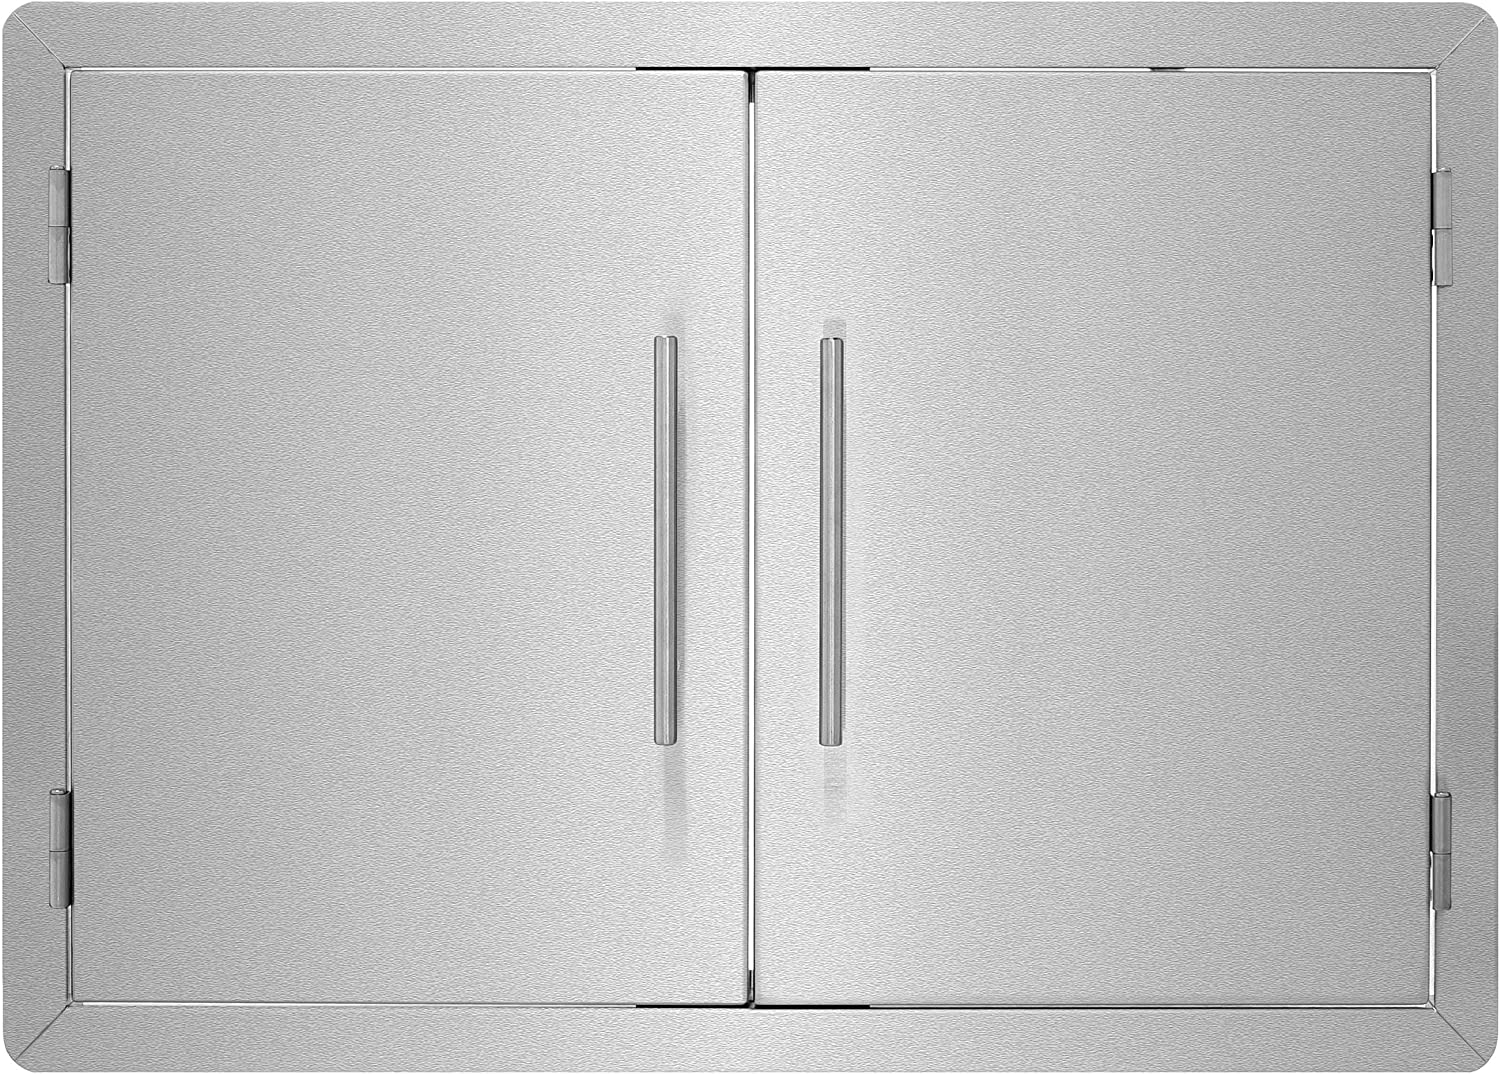 AdirHome Stainless Steel Grill Double Access Single-Face Door - Easy Install Heavy Duty Stainless Steel Rust Resistant Access Door with Chromium Plated Handle (30 Inch)